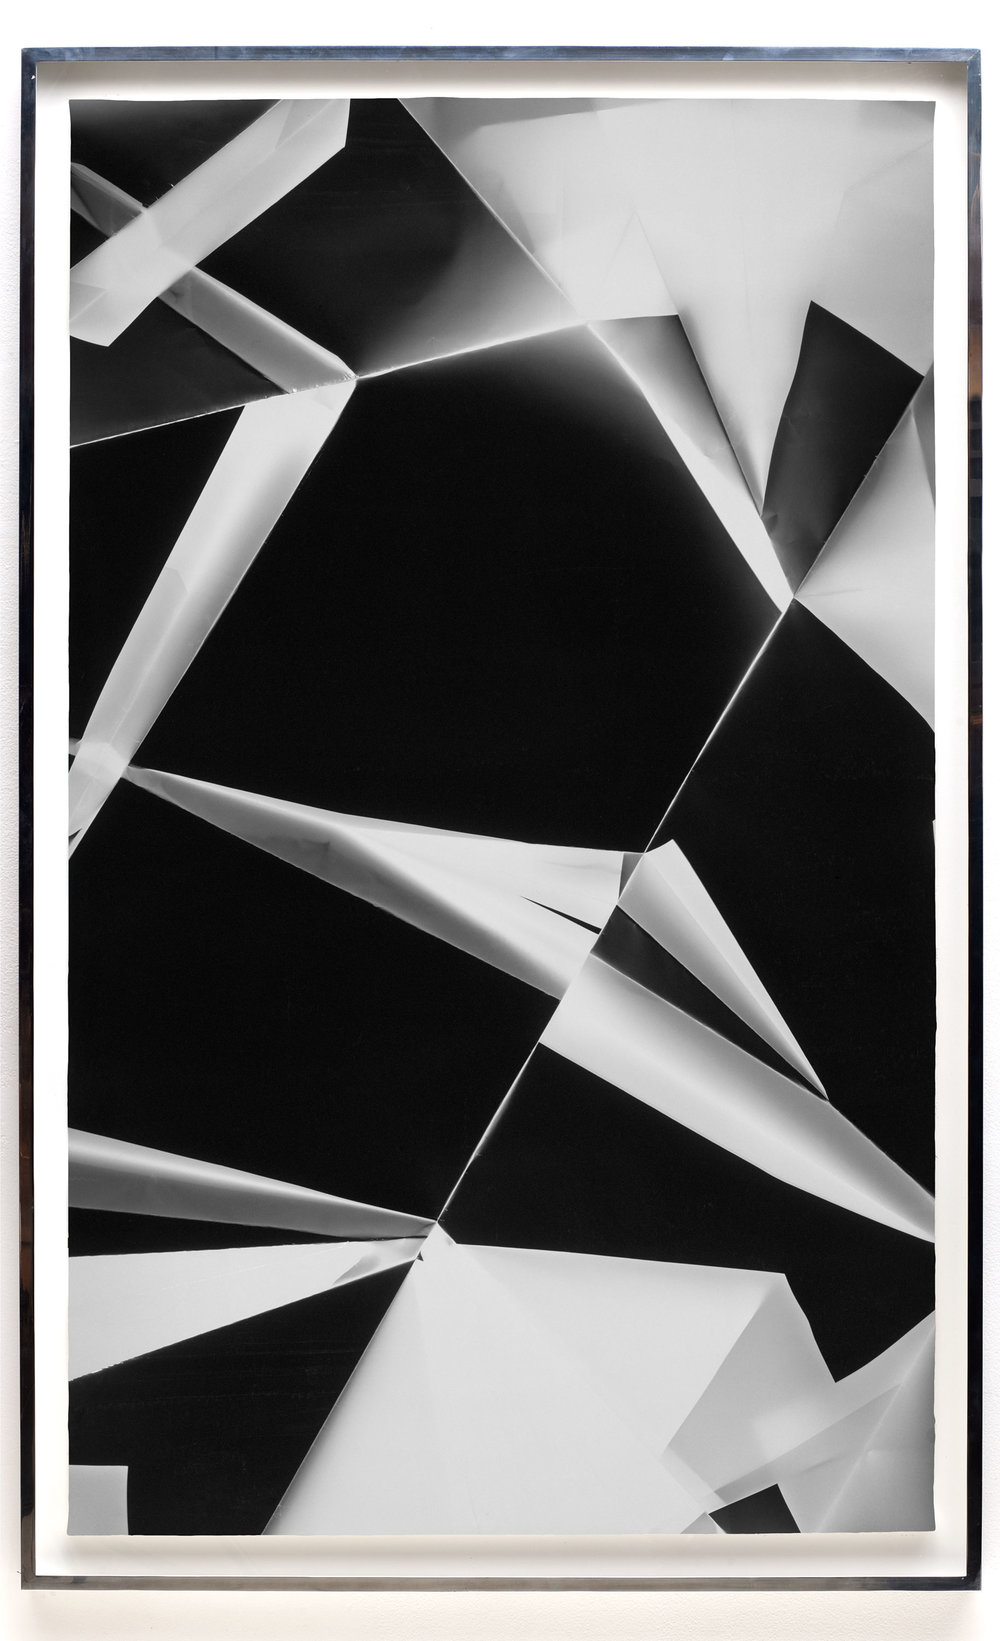 Fold (0º/90º/180º/270º directional light sources), June 13, 2008, Annandale-On-Hudson, New York, Foma Multigrade Fiber   2009  Black and white fiber based photographic paper  74 x 46 3/4 inches   Black and White Directional Folds, 2006–2014    Legibility on Color Backgrounds, 2009